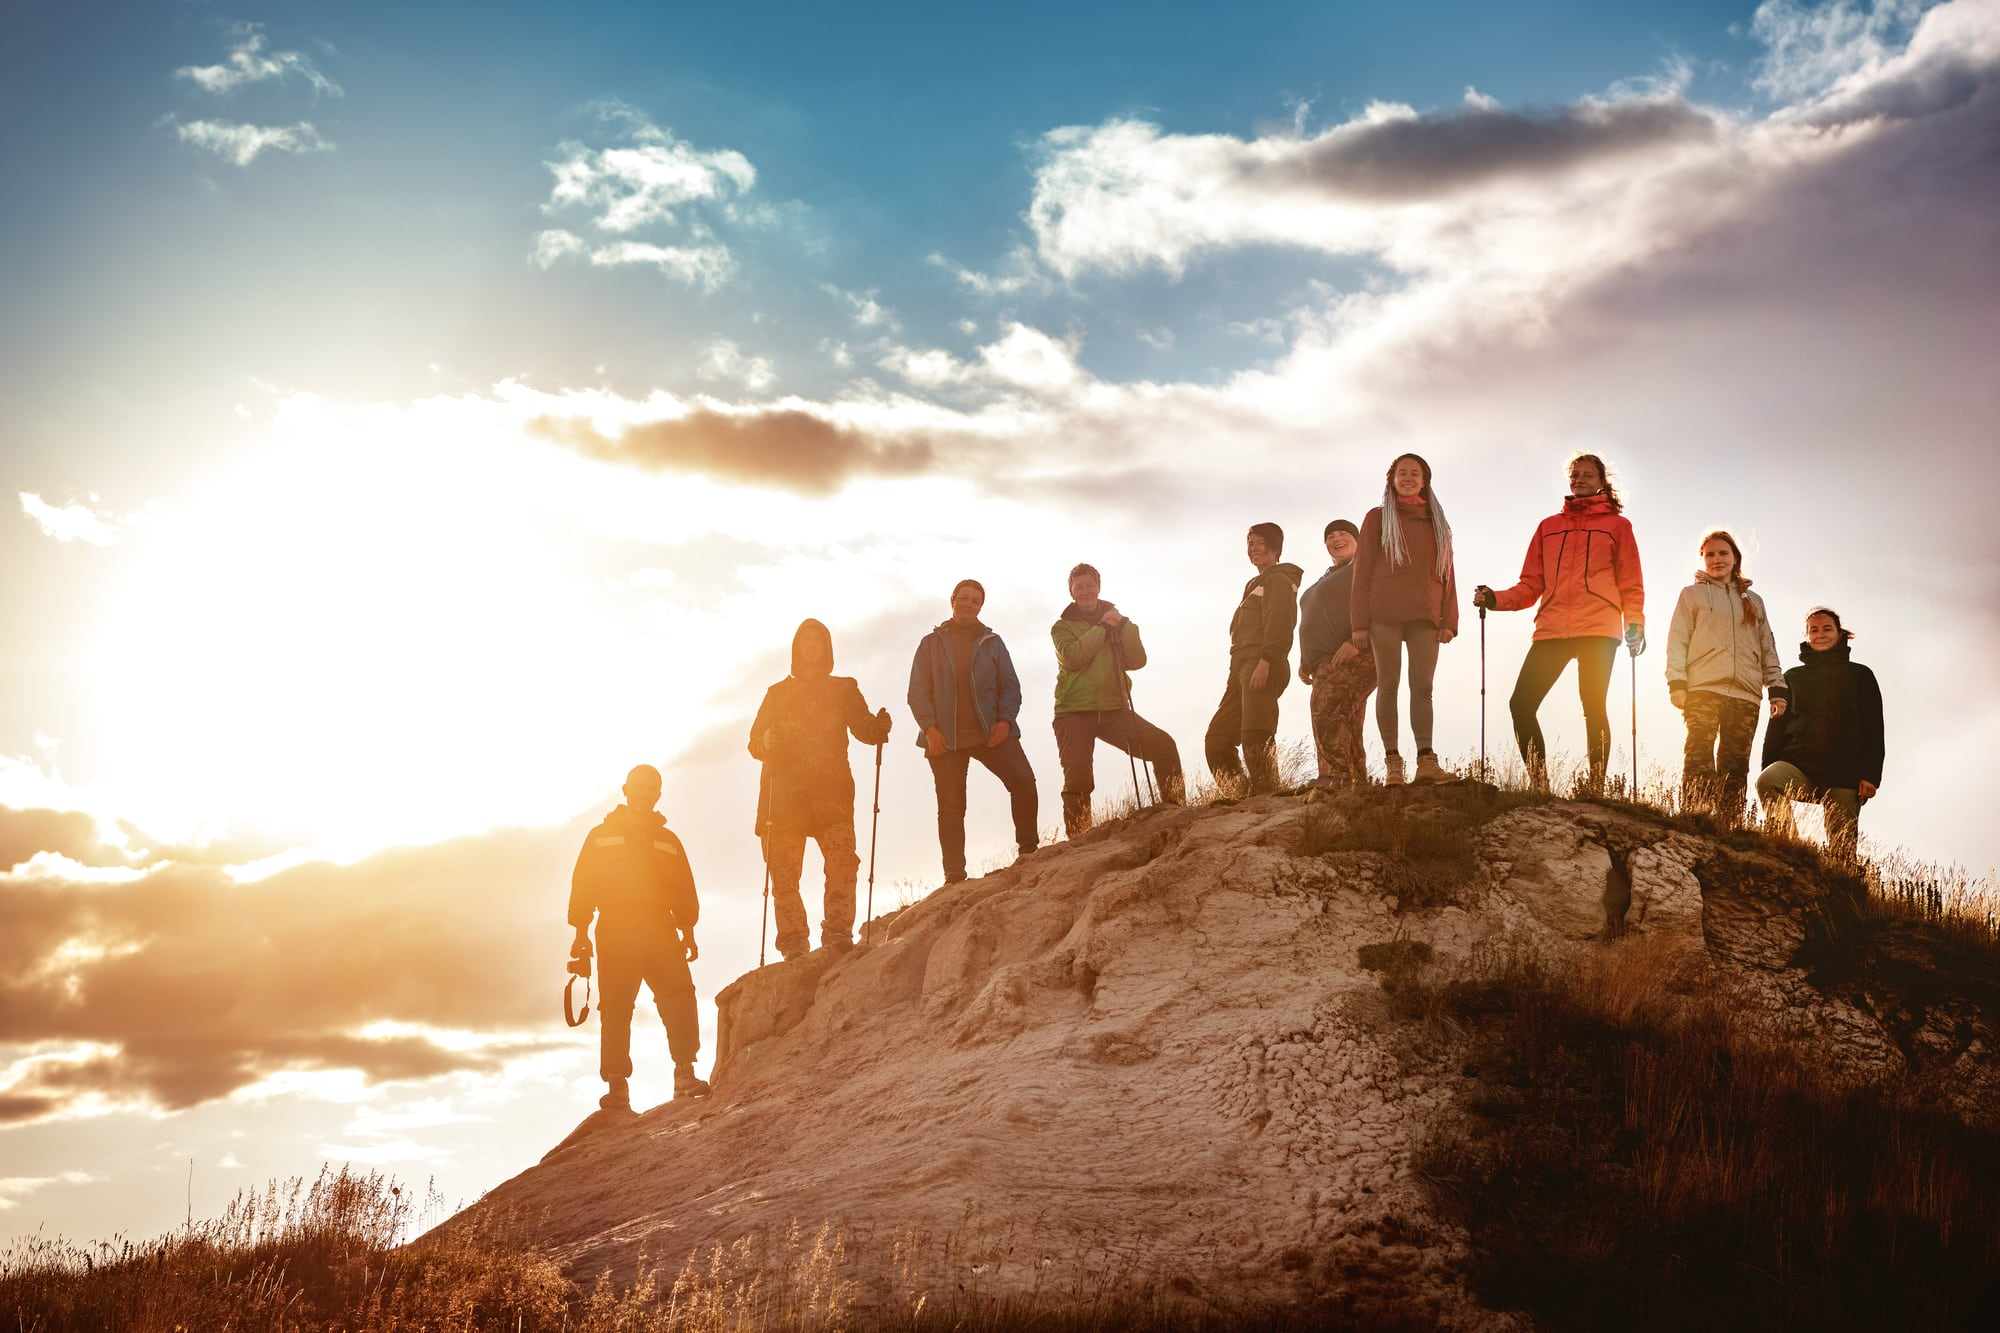 10 expedition contestants